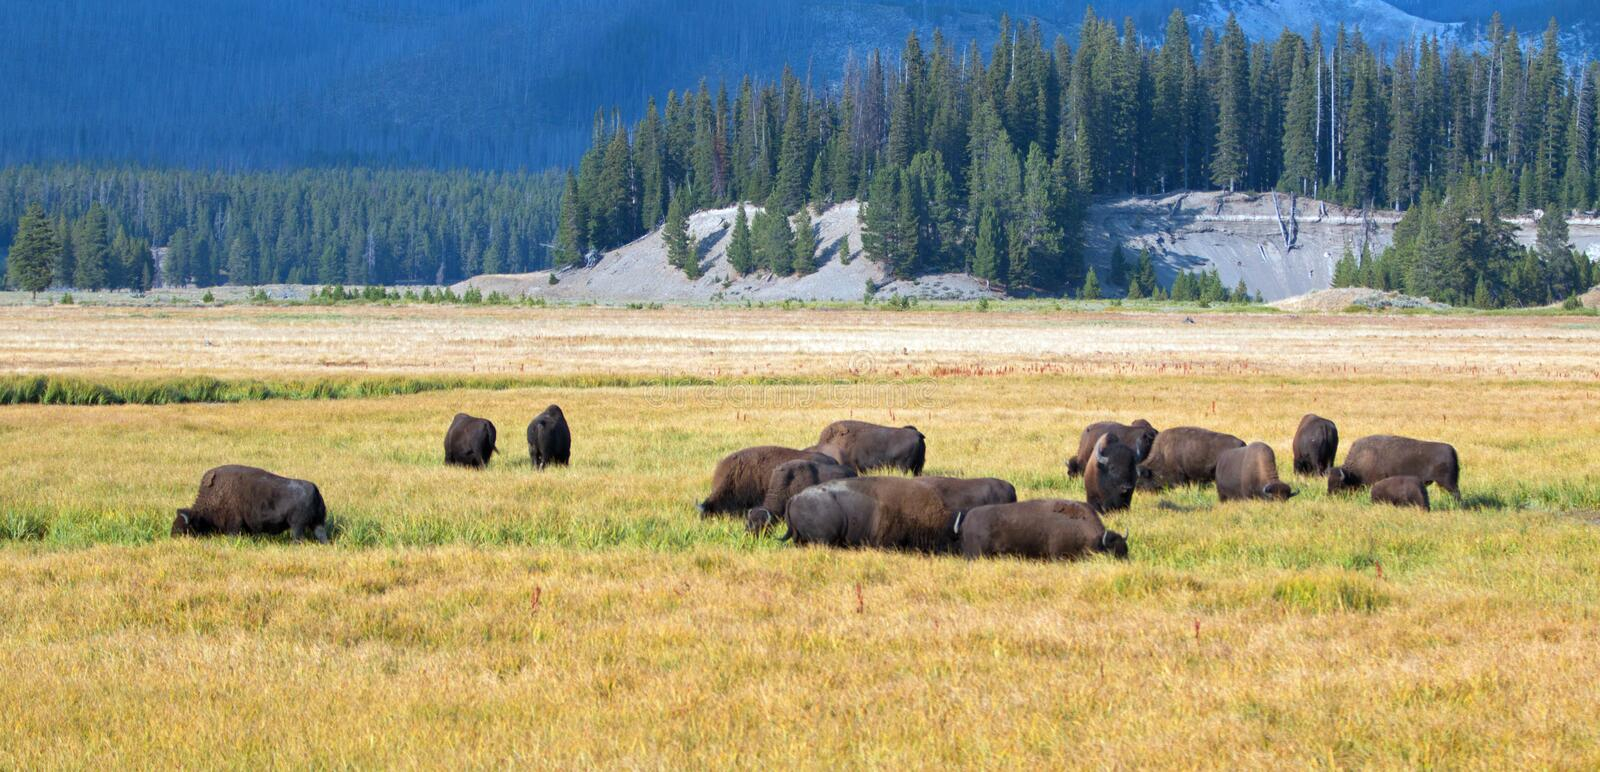 Bison Buffalo Herd in Pelican Creek grassland in Yellowstone National Park in Wyoming stock photos